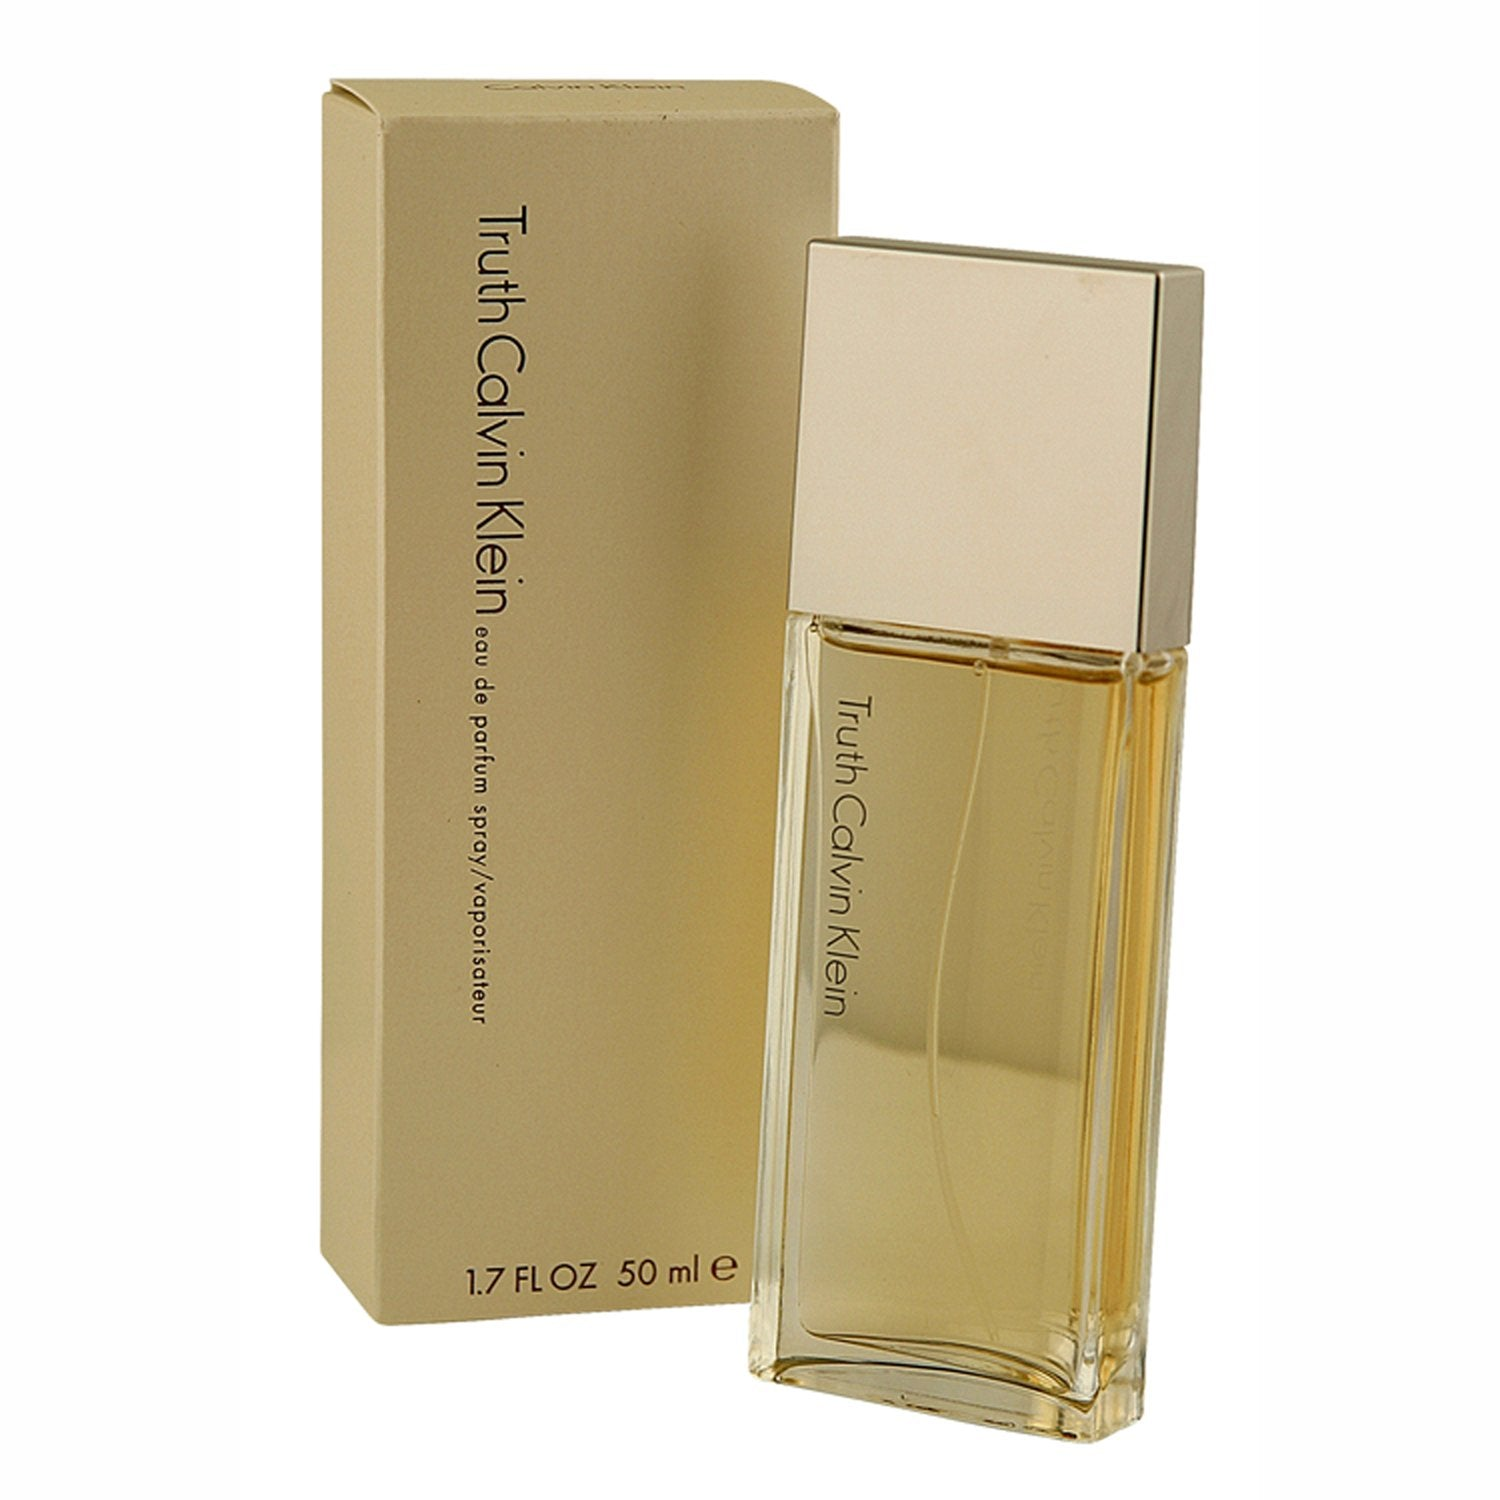 Perfume - TRUTH FOR WOMEN BY CALVIN KLEIN - EAU DE PARFUM SPRAY